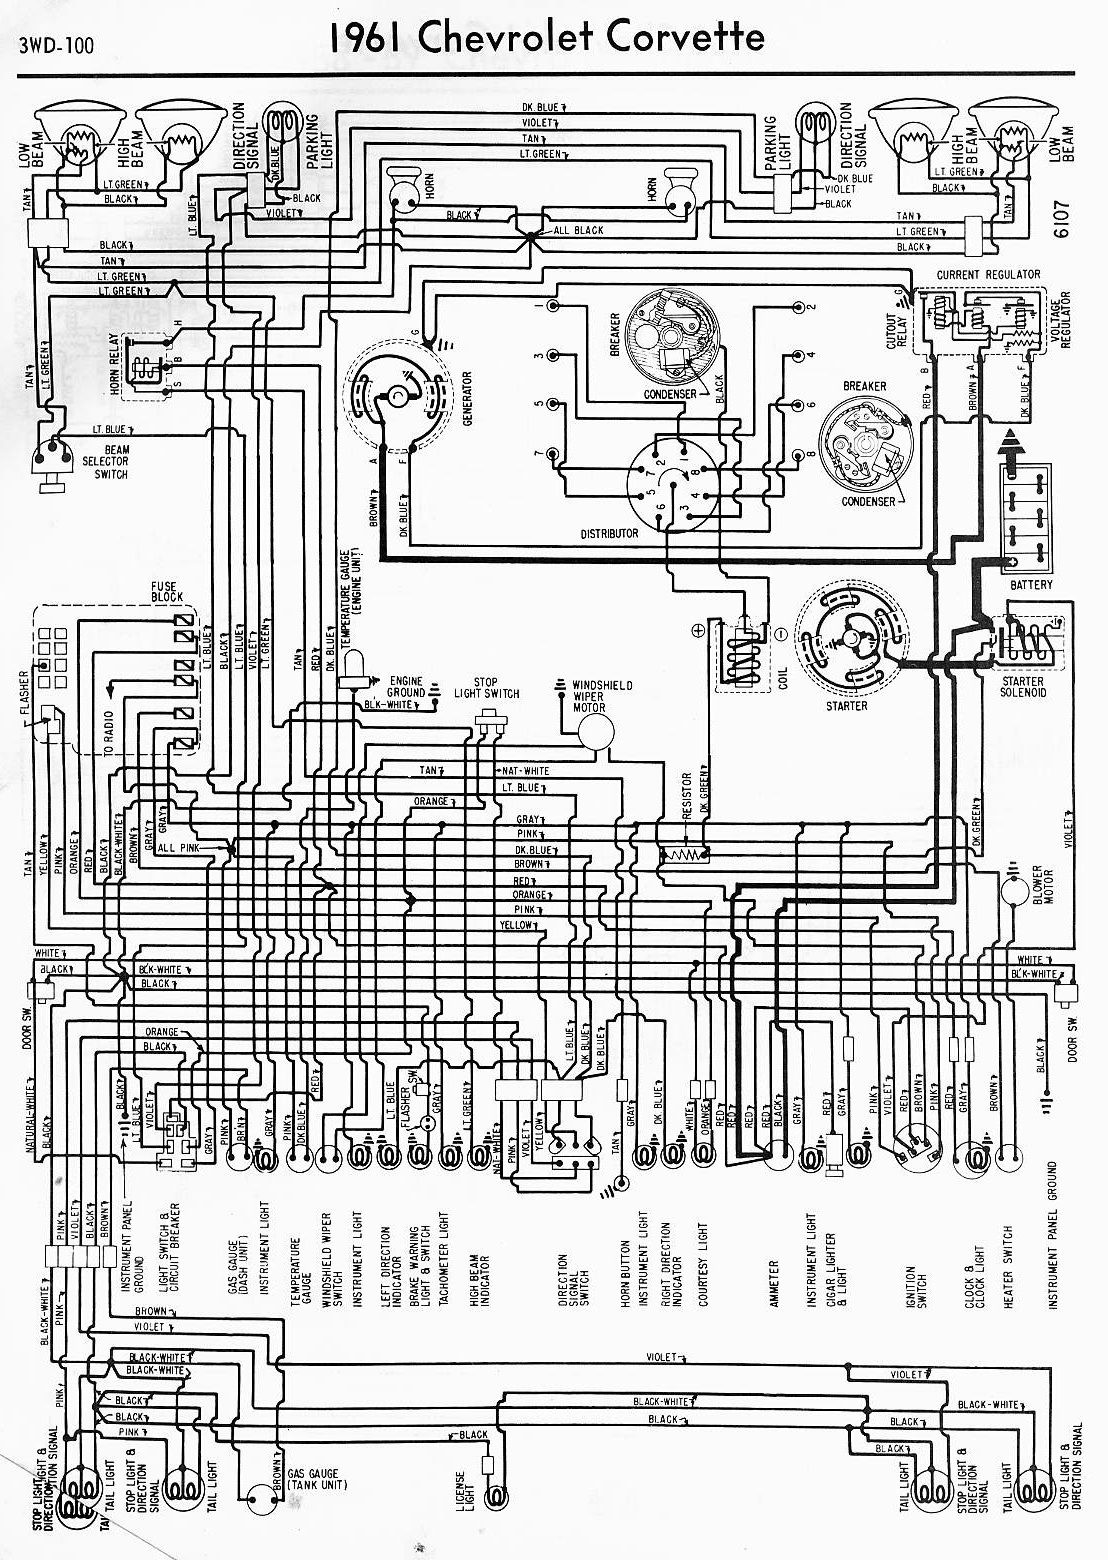 79 Corvette Wiring Harness Diagram bull Wiring Diagram For Free